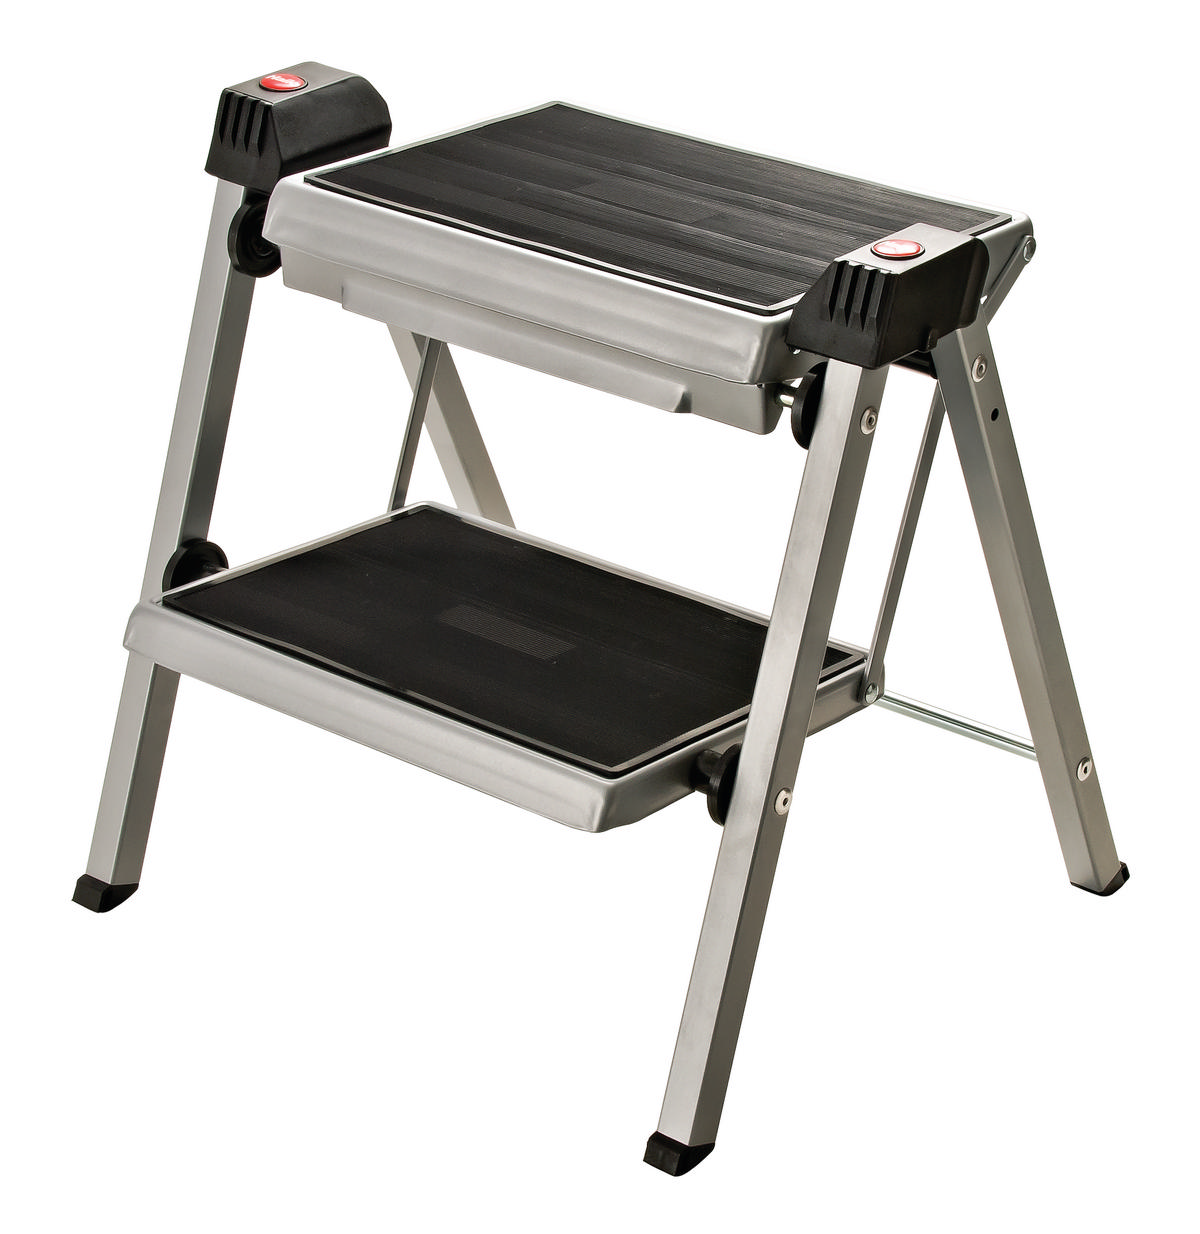 Hafele 505 04 210 Folding Step Stool Silver